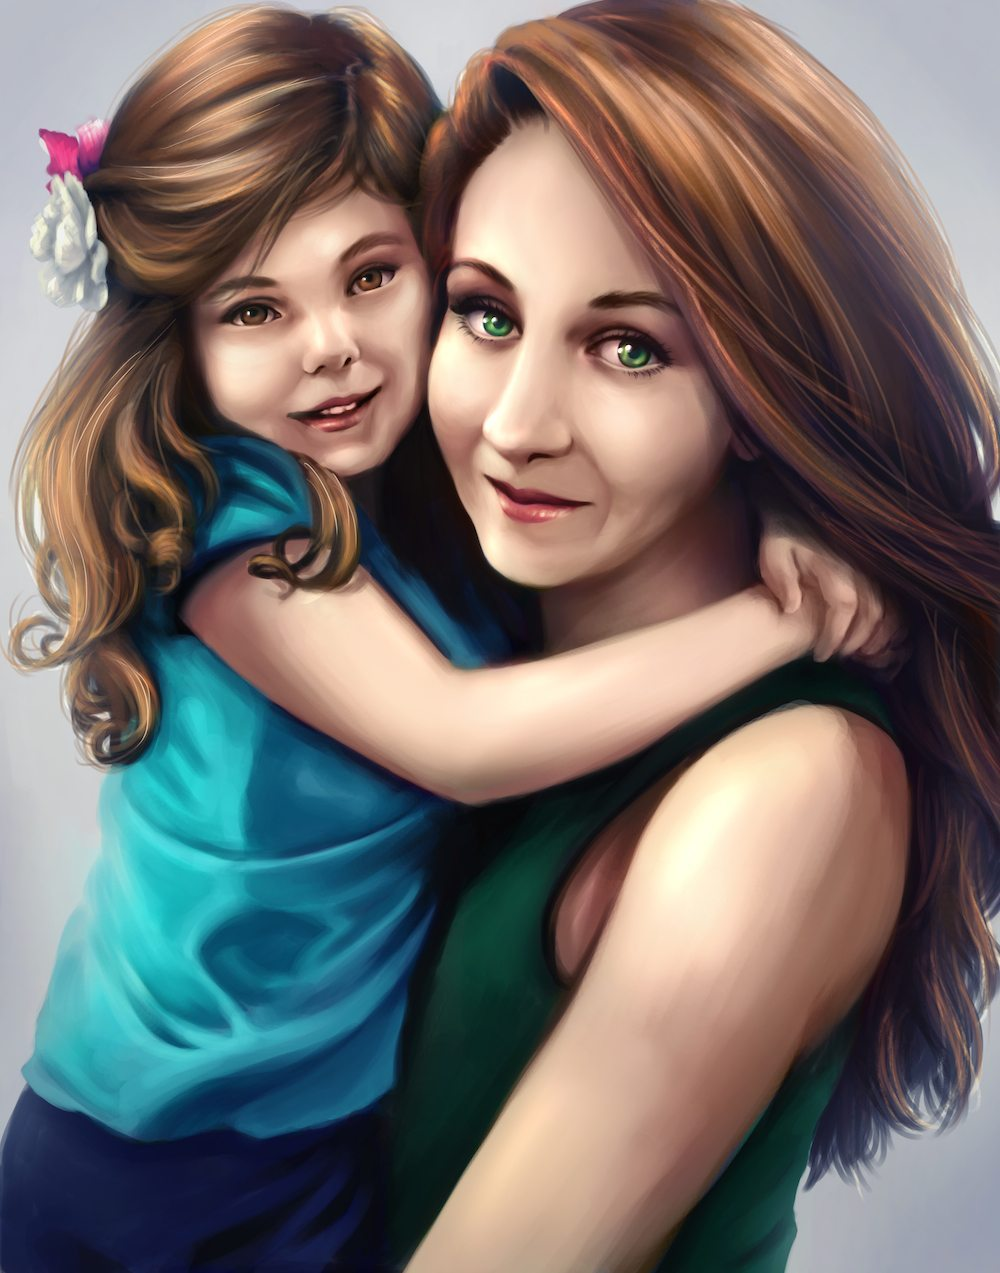 Portrait of a Mother and Daughter by Shobey1kanoby via ArtCorgi